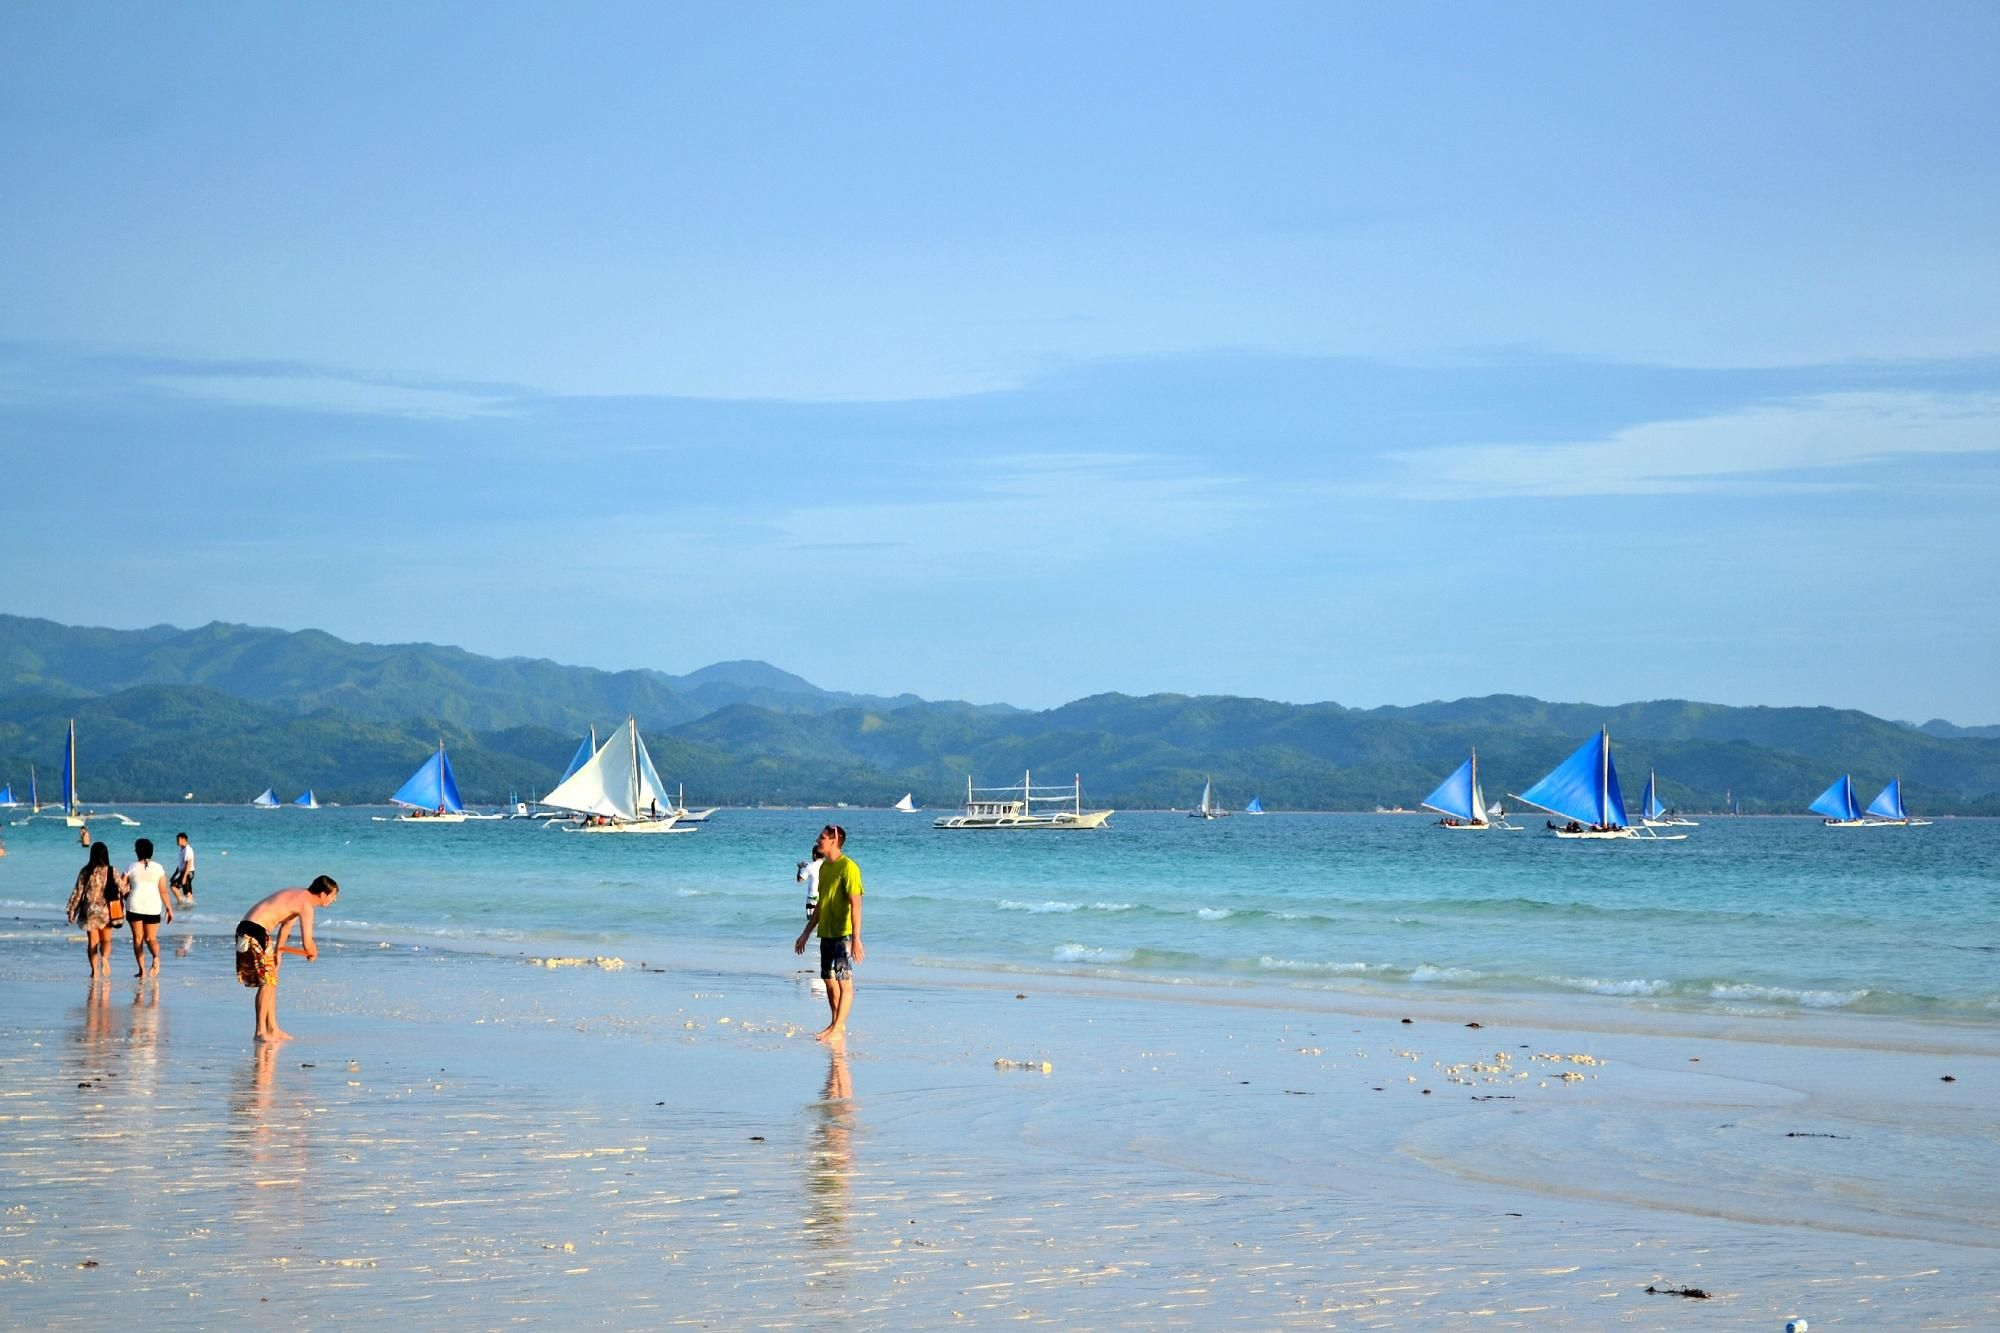 Boracay Tourism and Vacations Best of Boracay